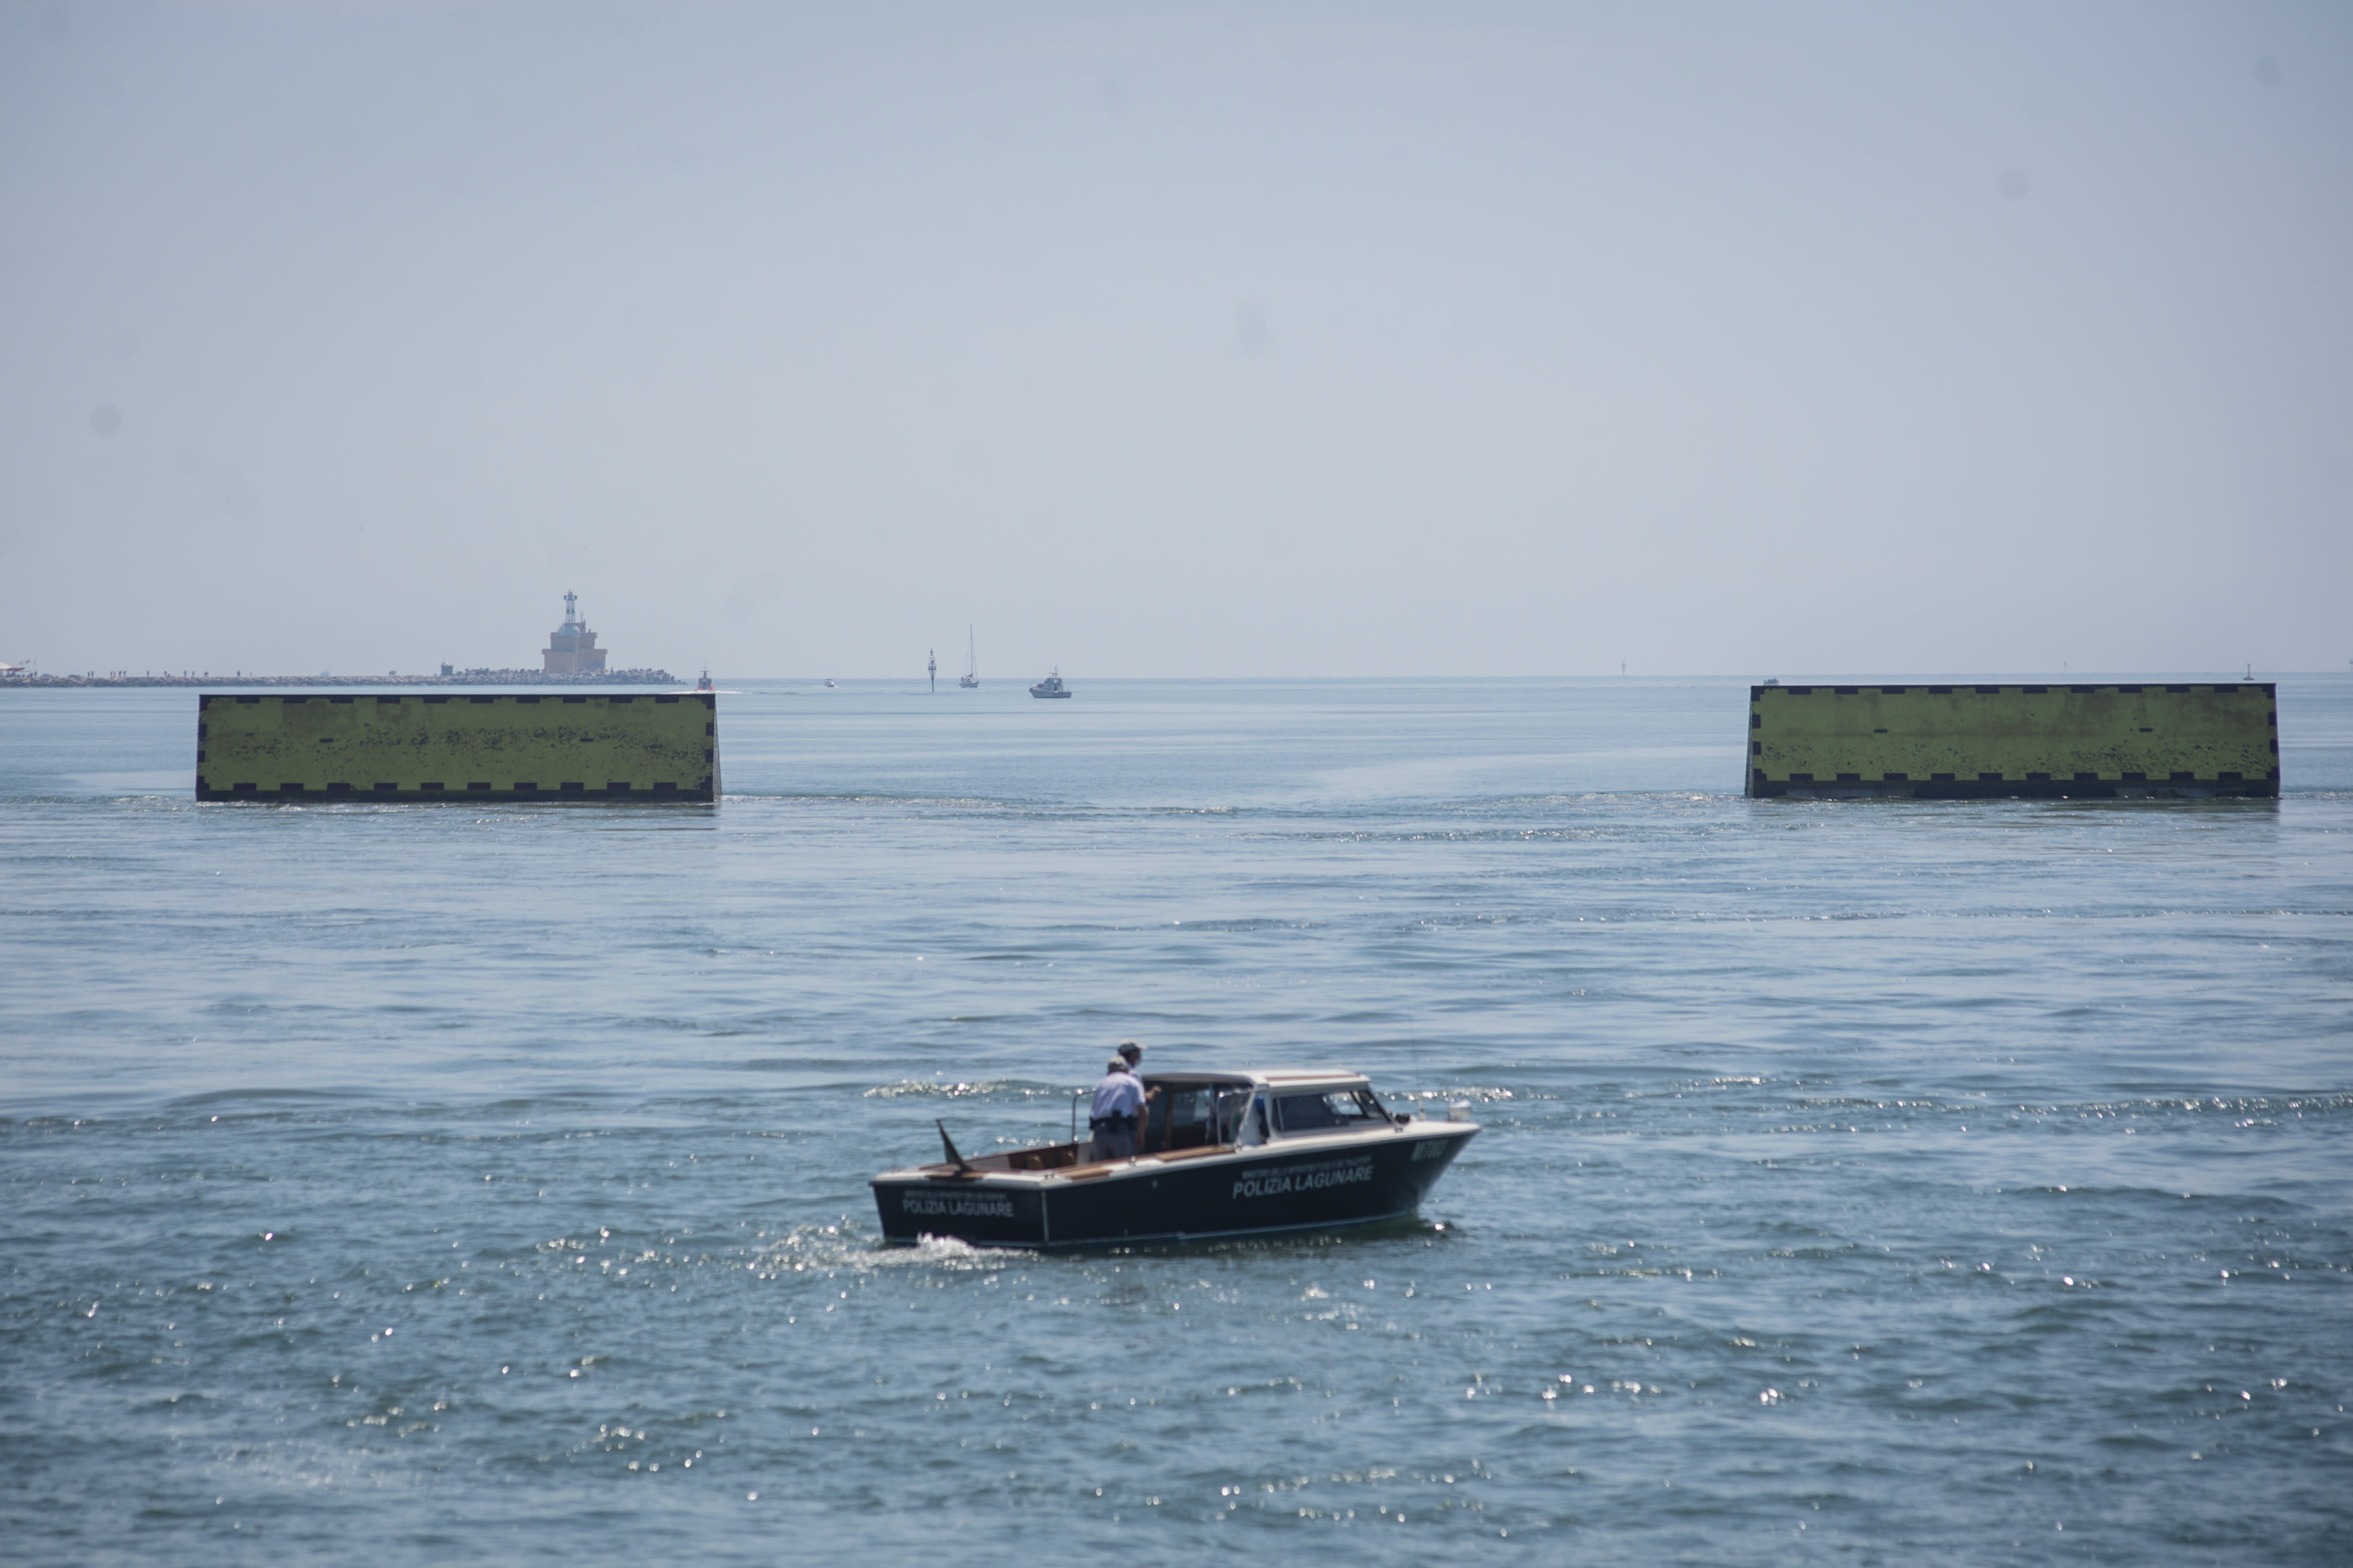 Moveable flood gates rise from the sea in the Venice lagoon, Italy, Friday, July 10, 2020. Venice has conducted a trial run an ambitious anti-flood system of 78 inflatable barriers in the hopes of protecting the lagoon city from devastating high tides. Premier Giuseppe Conte on Friday at a ceremony in Venice pressed a button that activated compressors to pump air into the bright yellow barriers, which then started rising from the sea to act a kind of a dike-on-demand. (Claudio Furlan/LaPresse via AP)